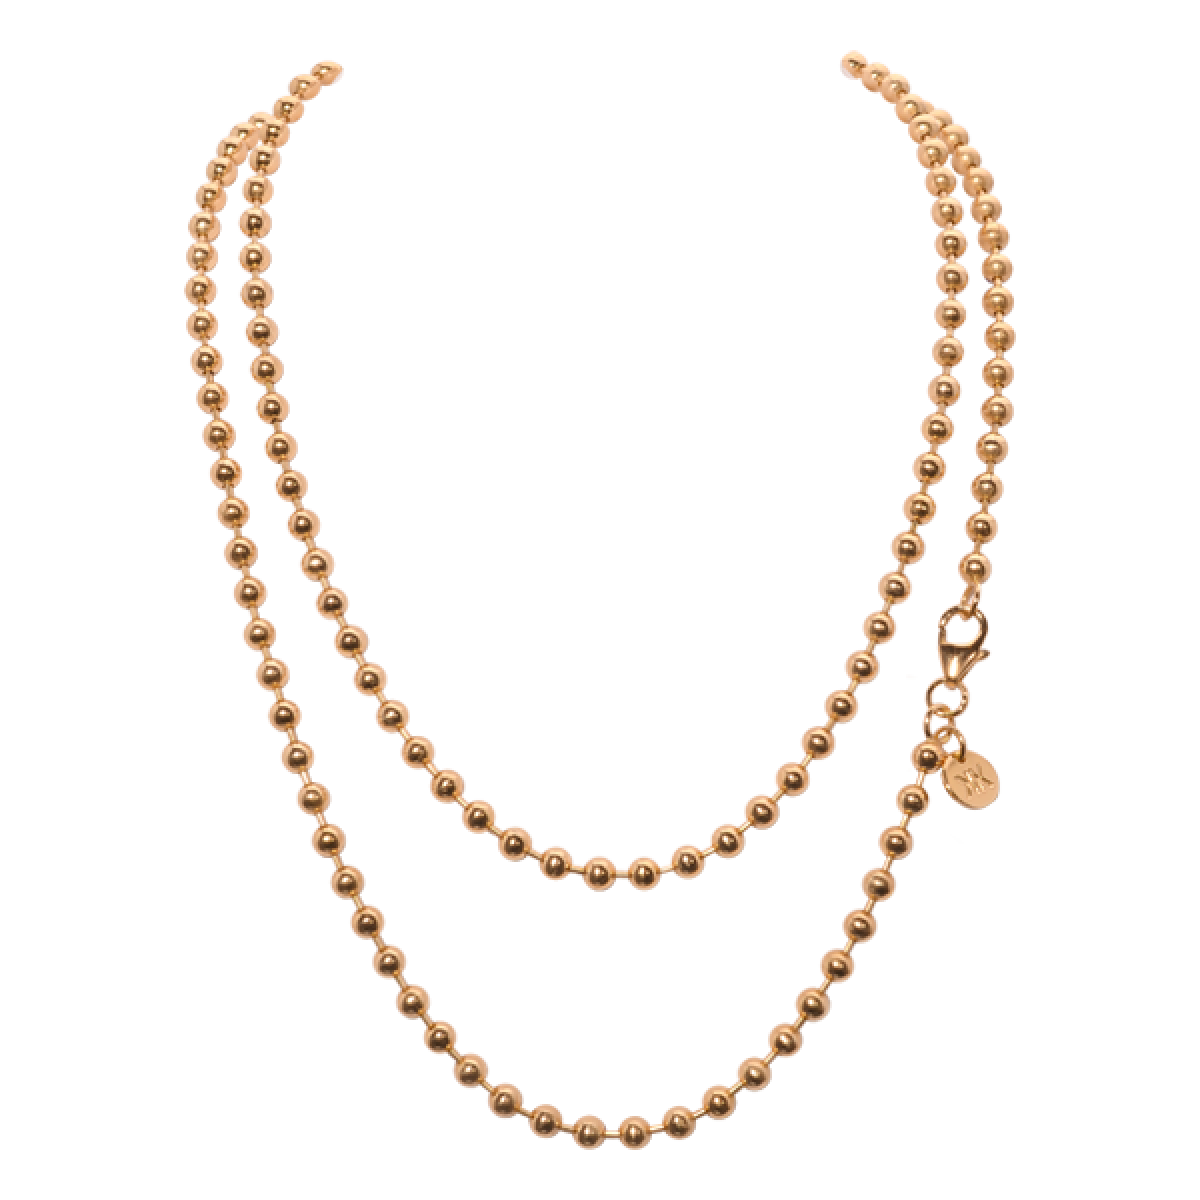 Jewellery Chain PNG